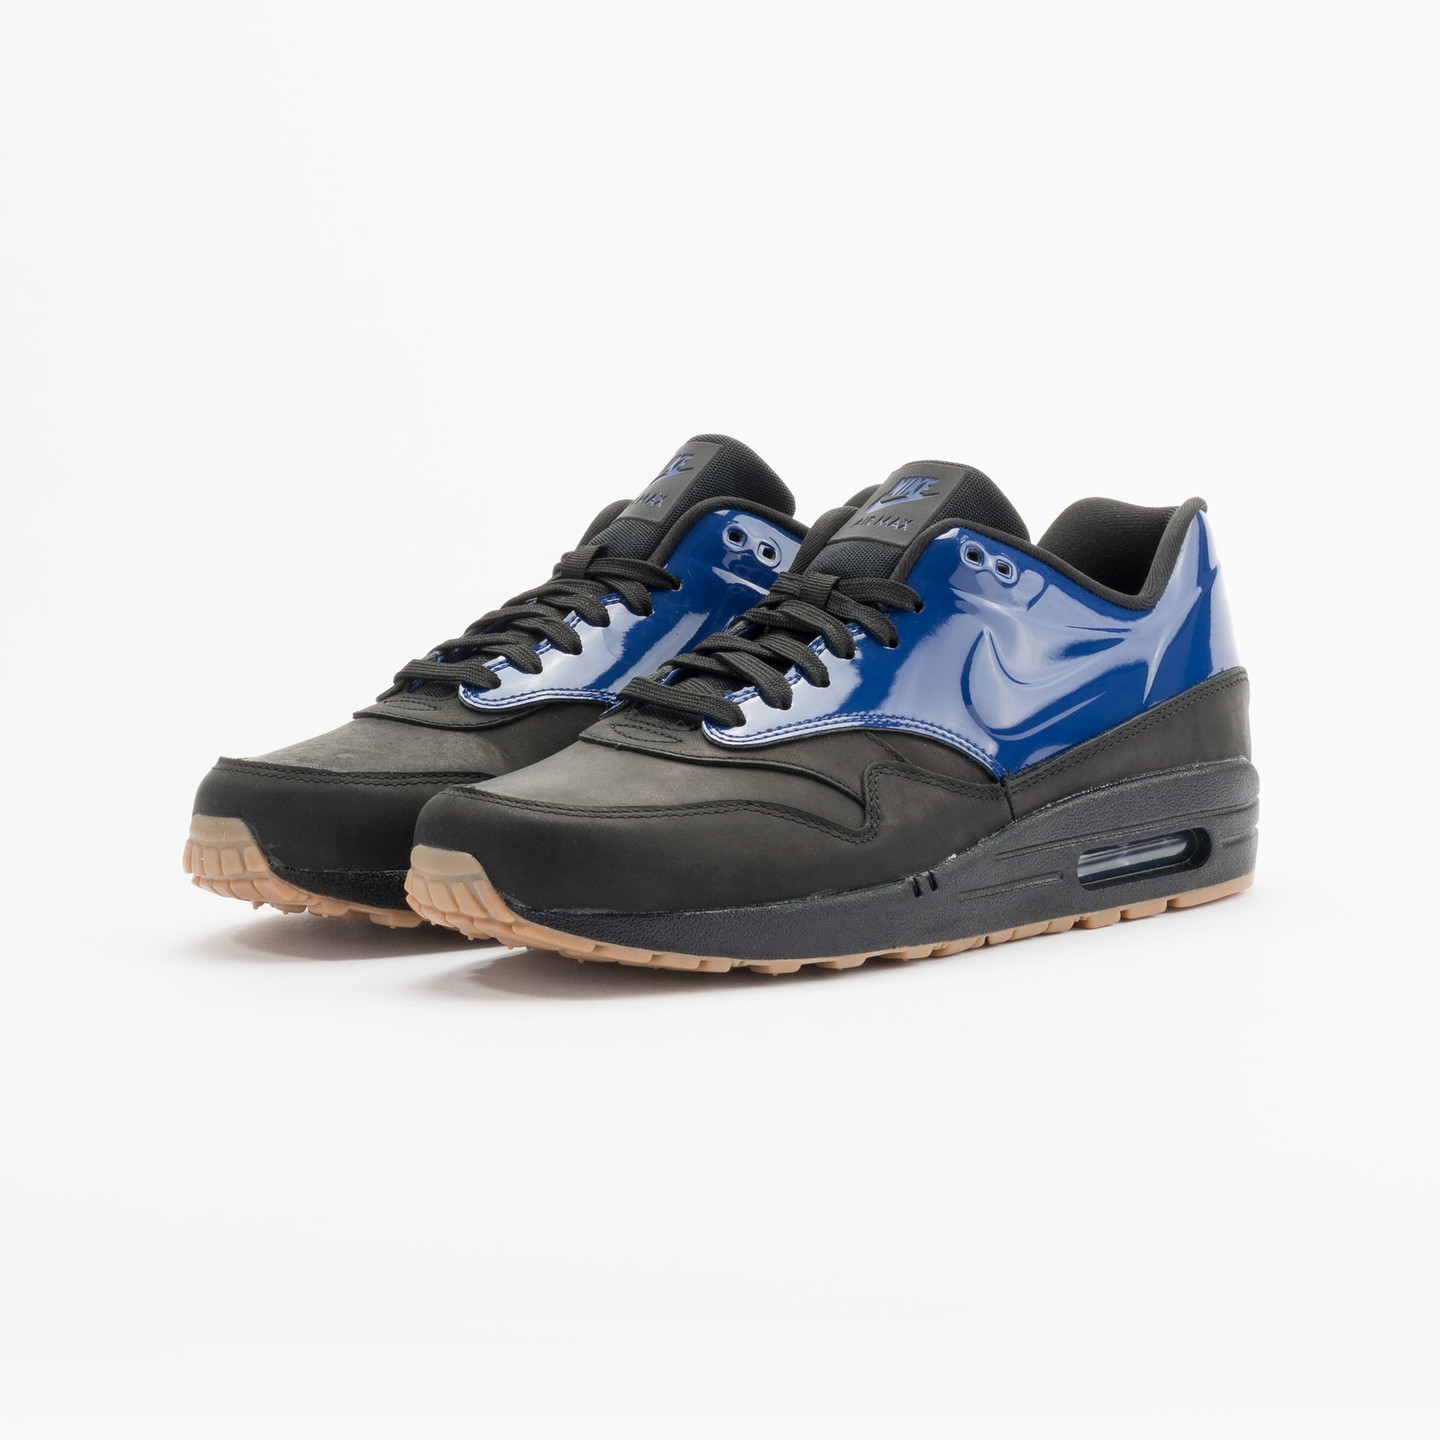 Nike Air Max 1 Vac Tech QS Deep Royal Blue / Black 831113-400-46